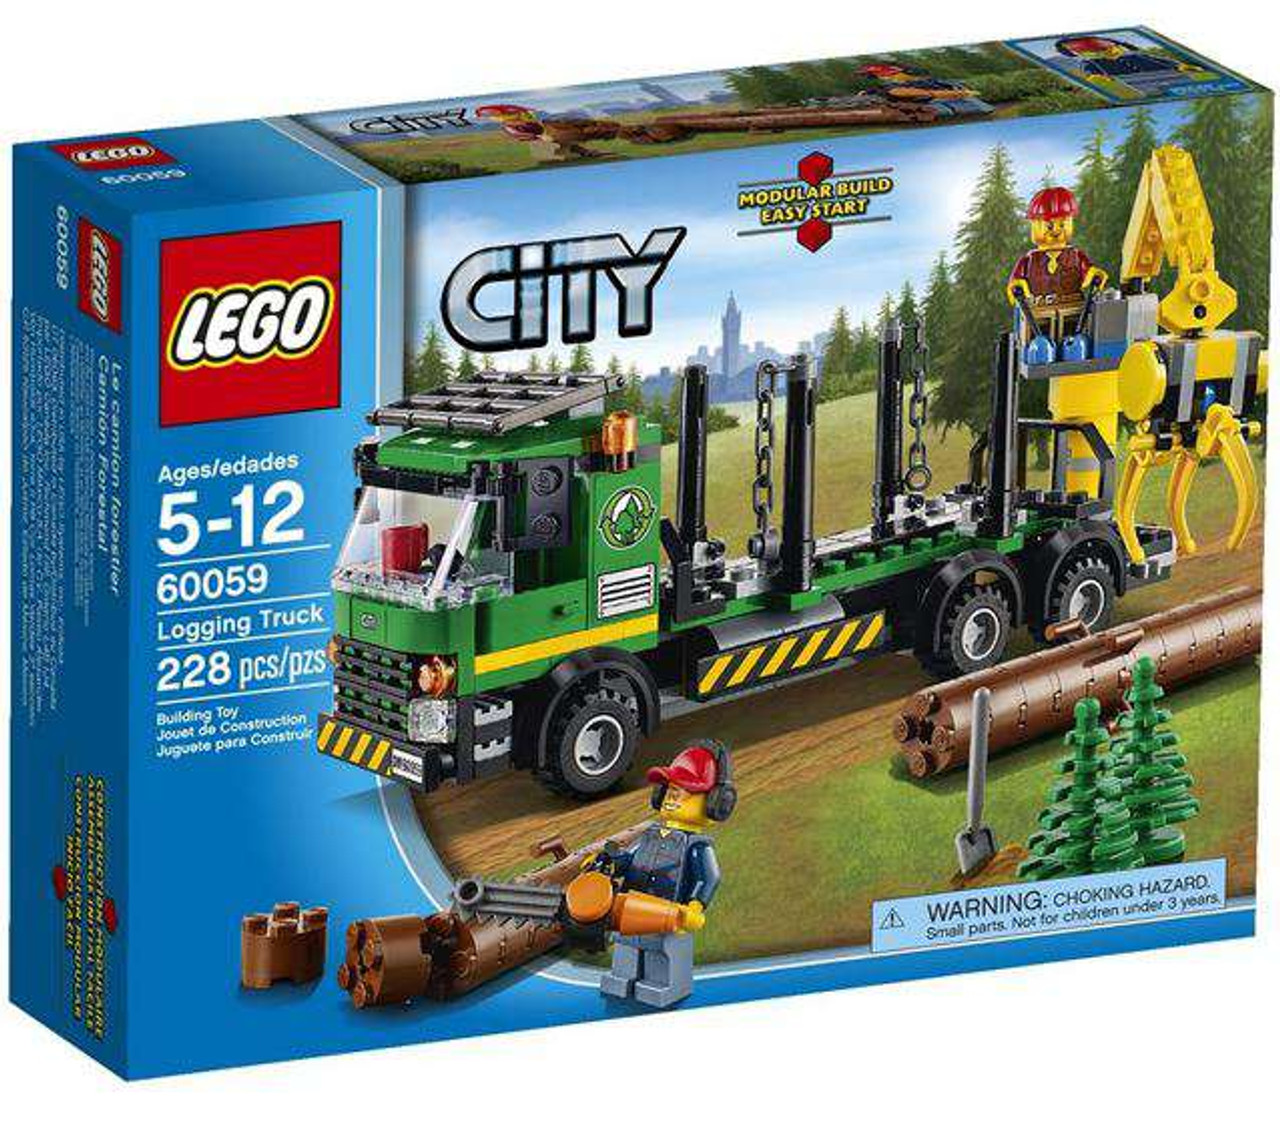 LEGO City Logging Truck Set #60059